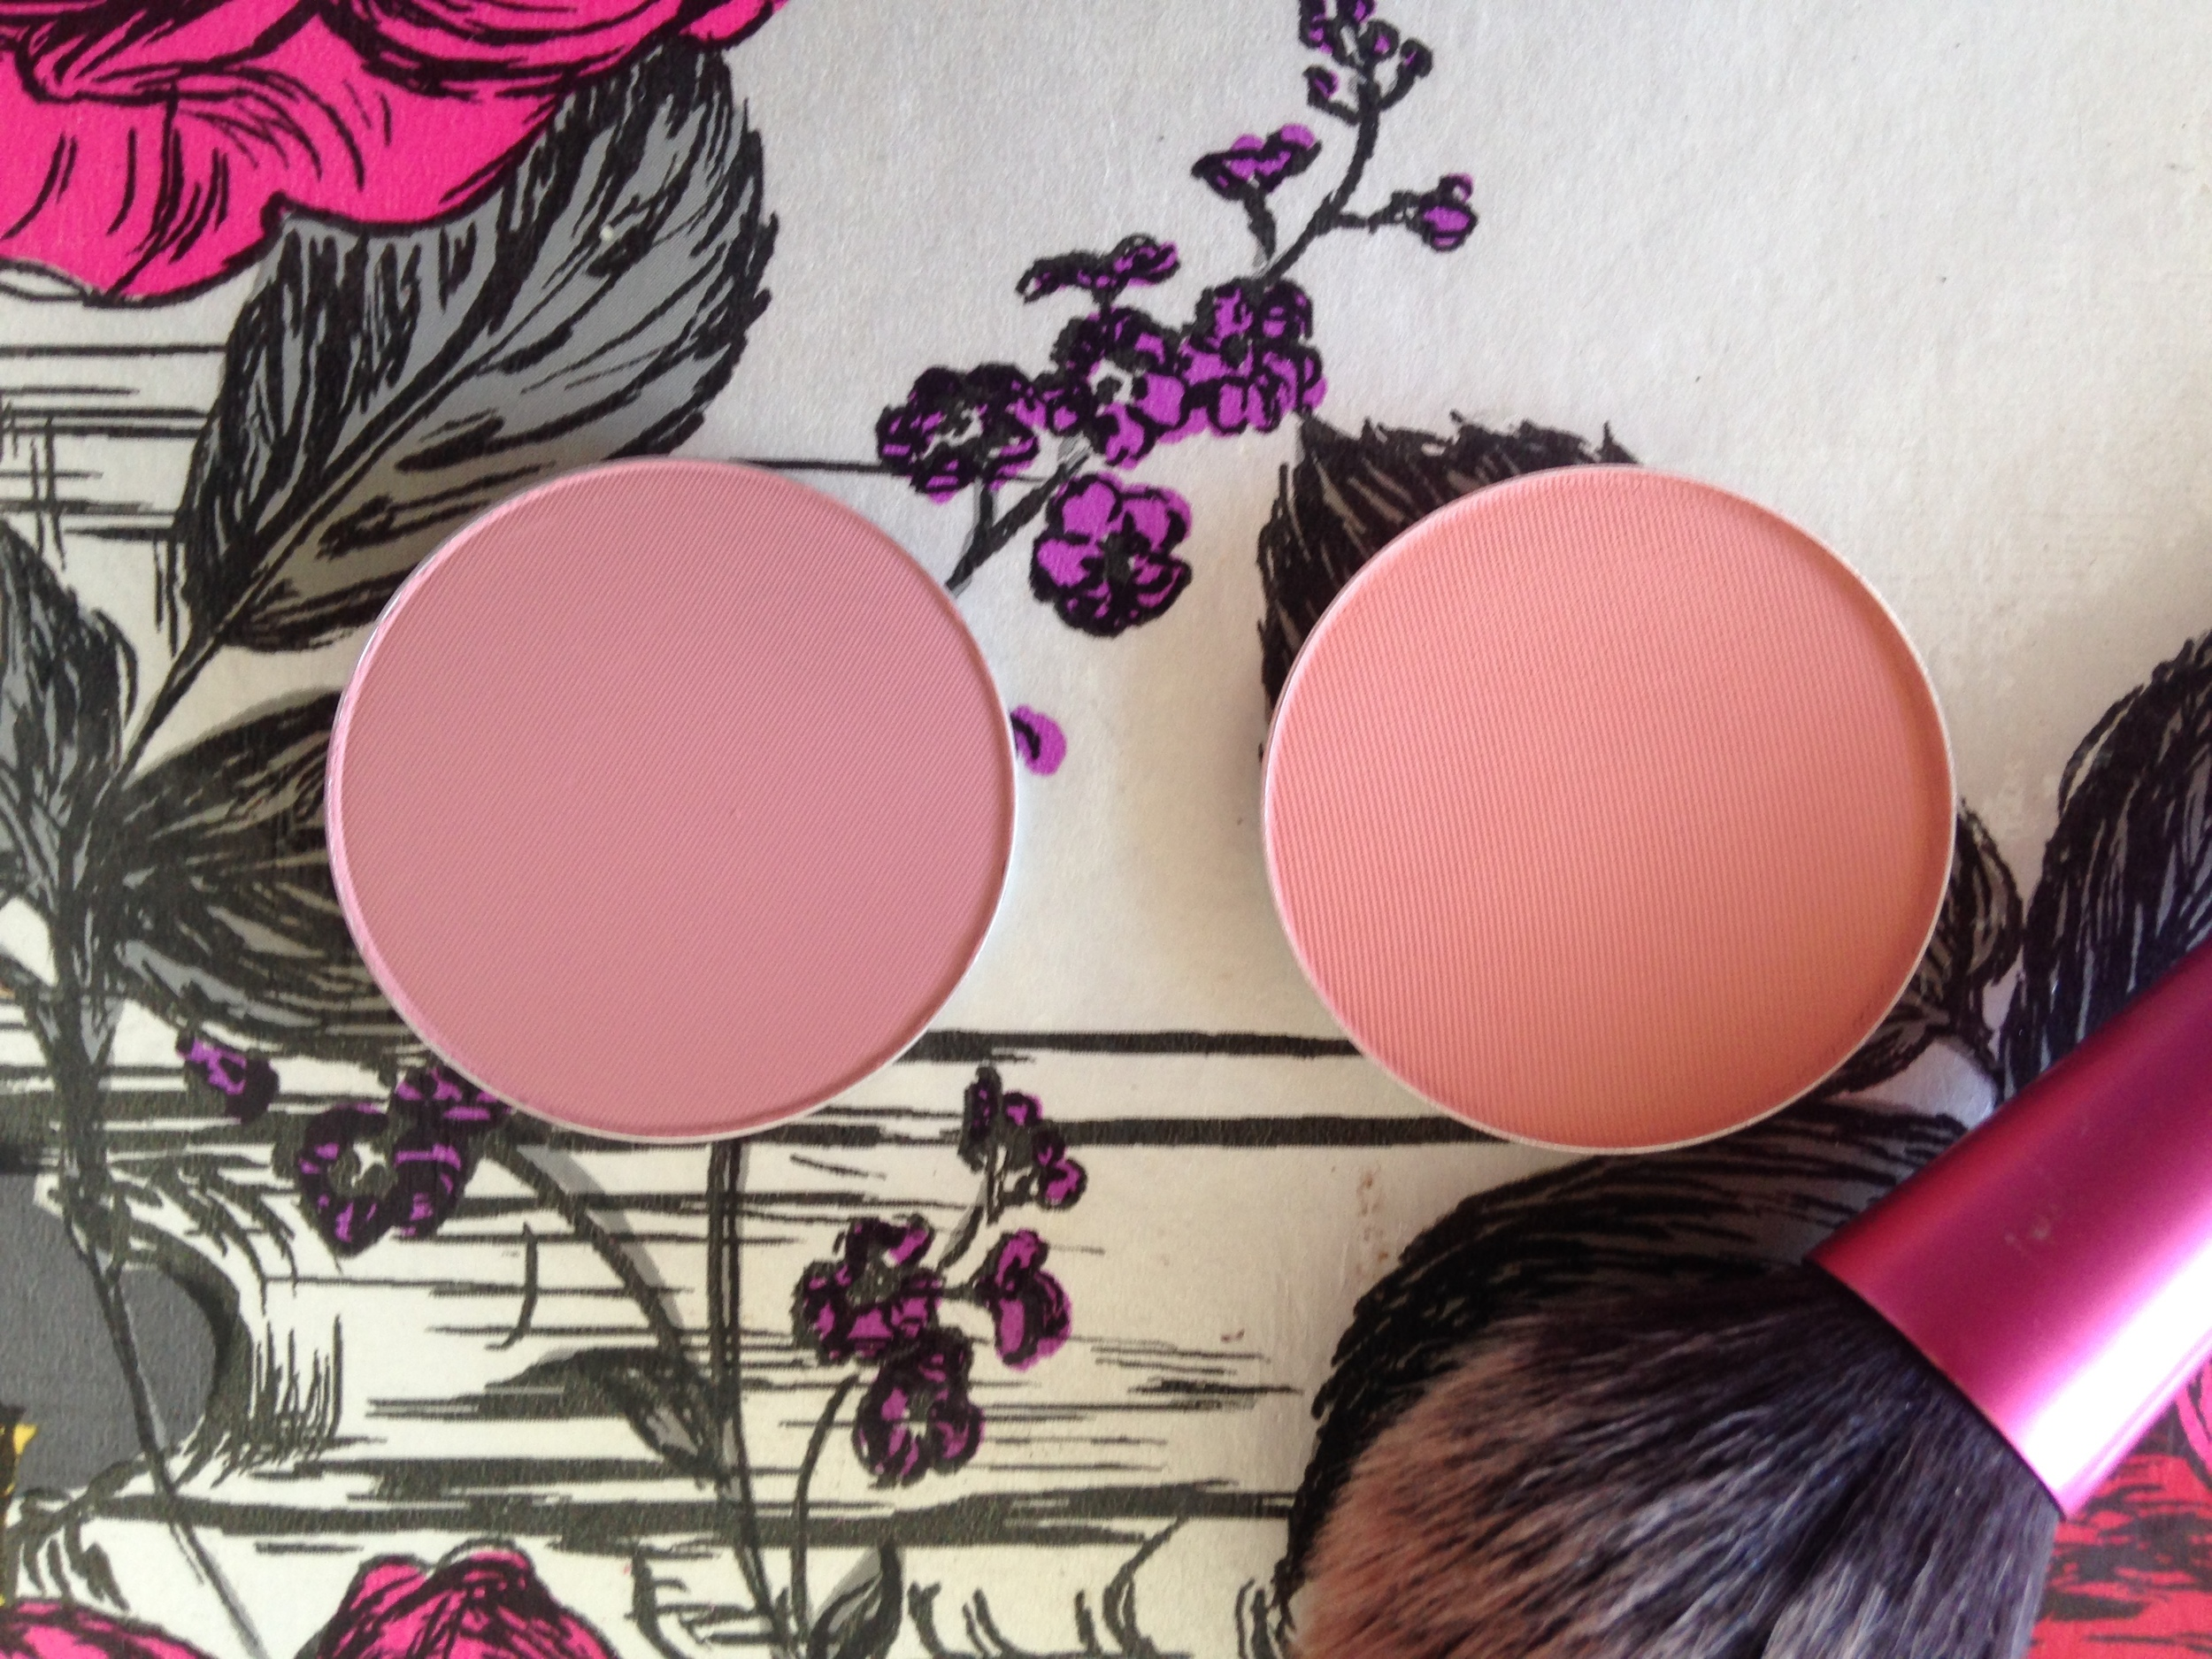 Pro Palette Blushes in Blushbaby (left) and Melba